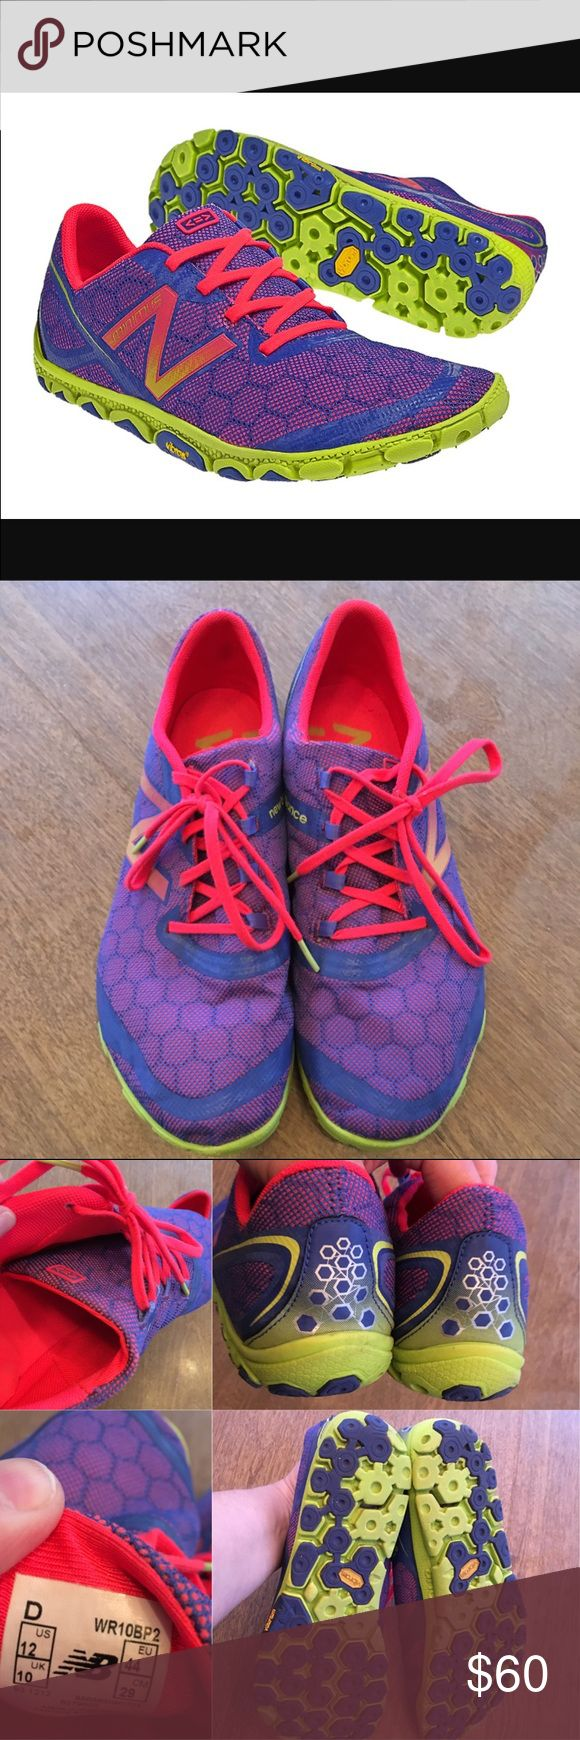 List! New Balance Minimal Running Shoes! EUC! Only worn a couple of times and got SO many complaints! New Balance Shoes Sneakers